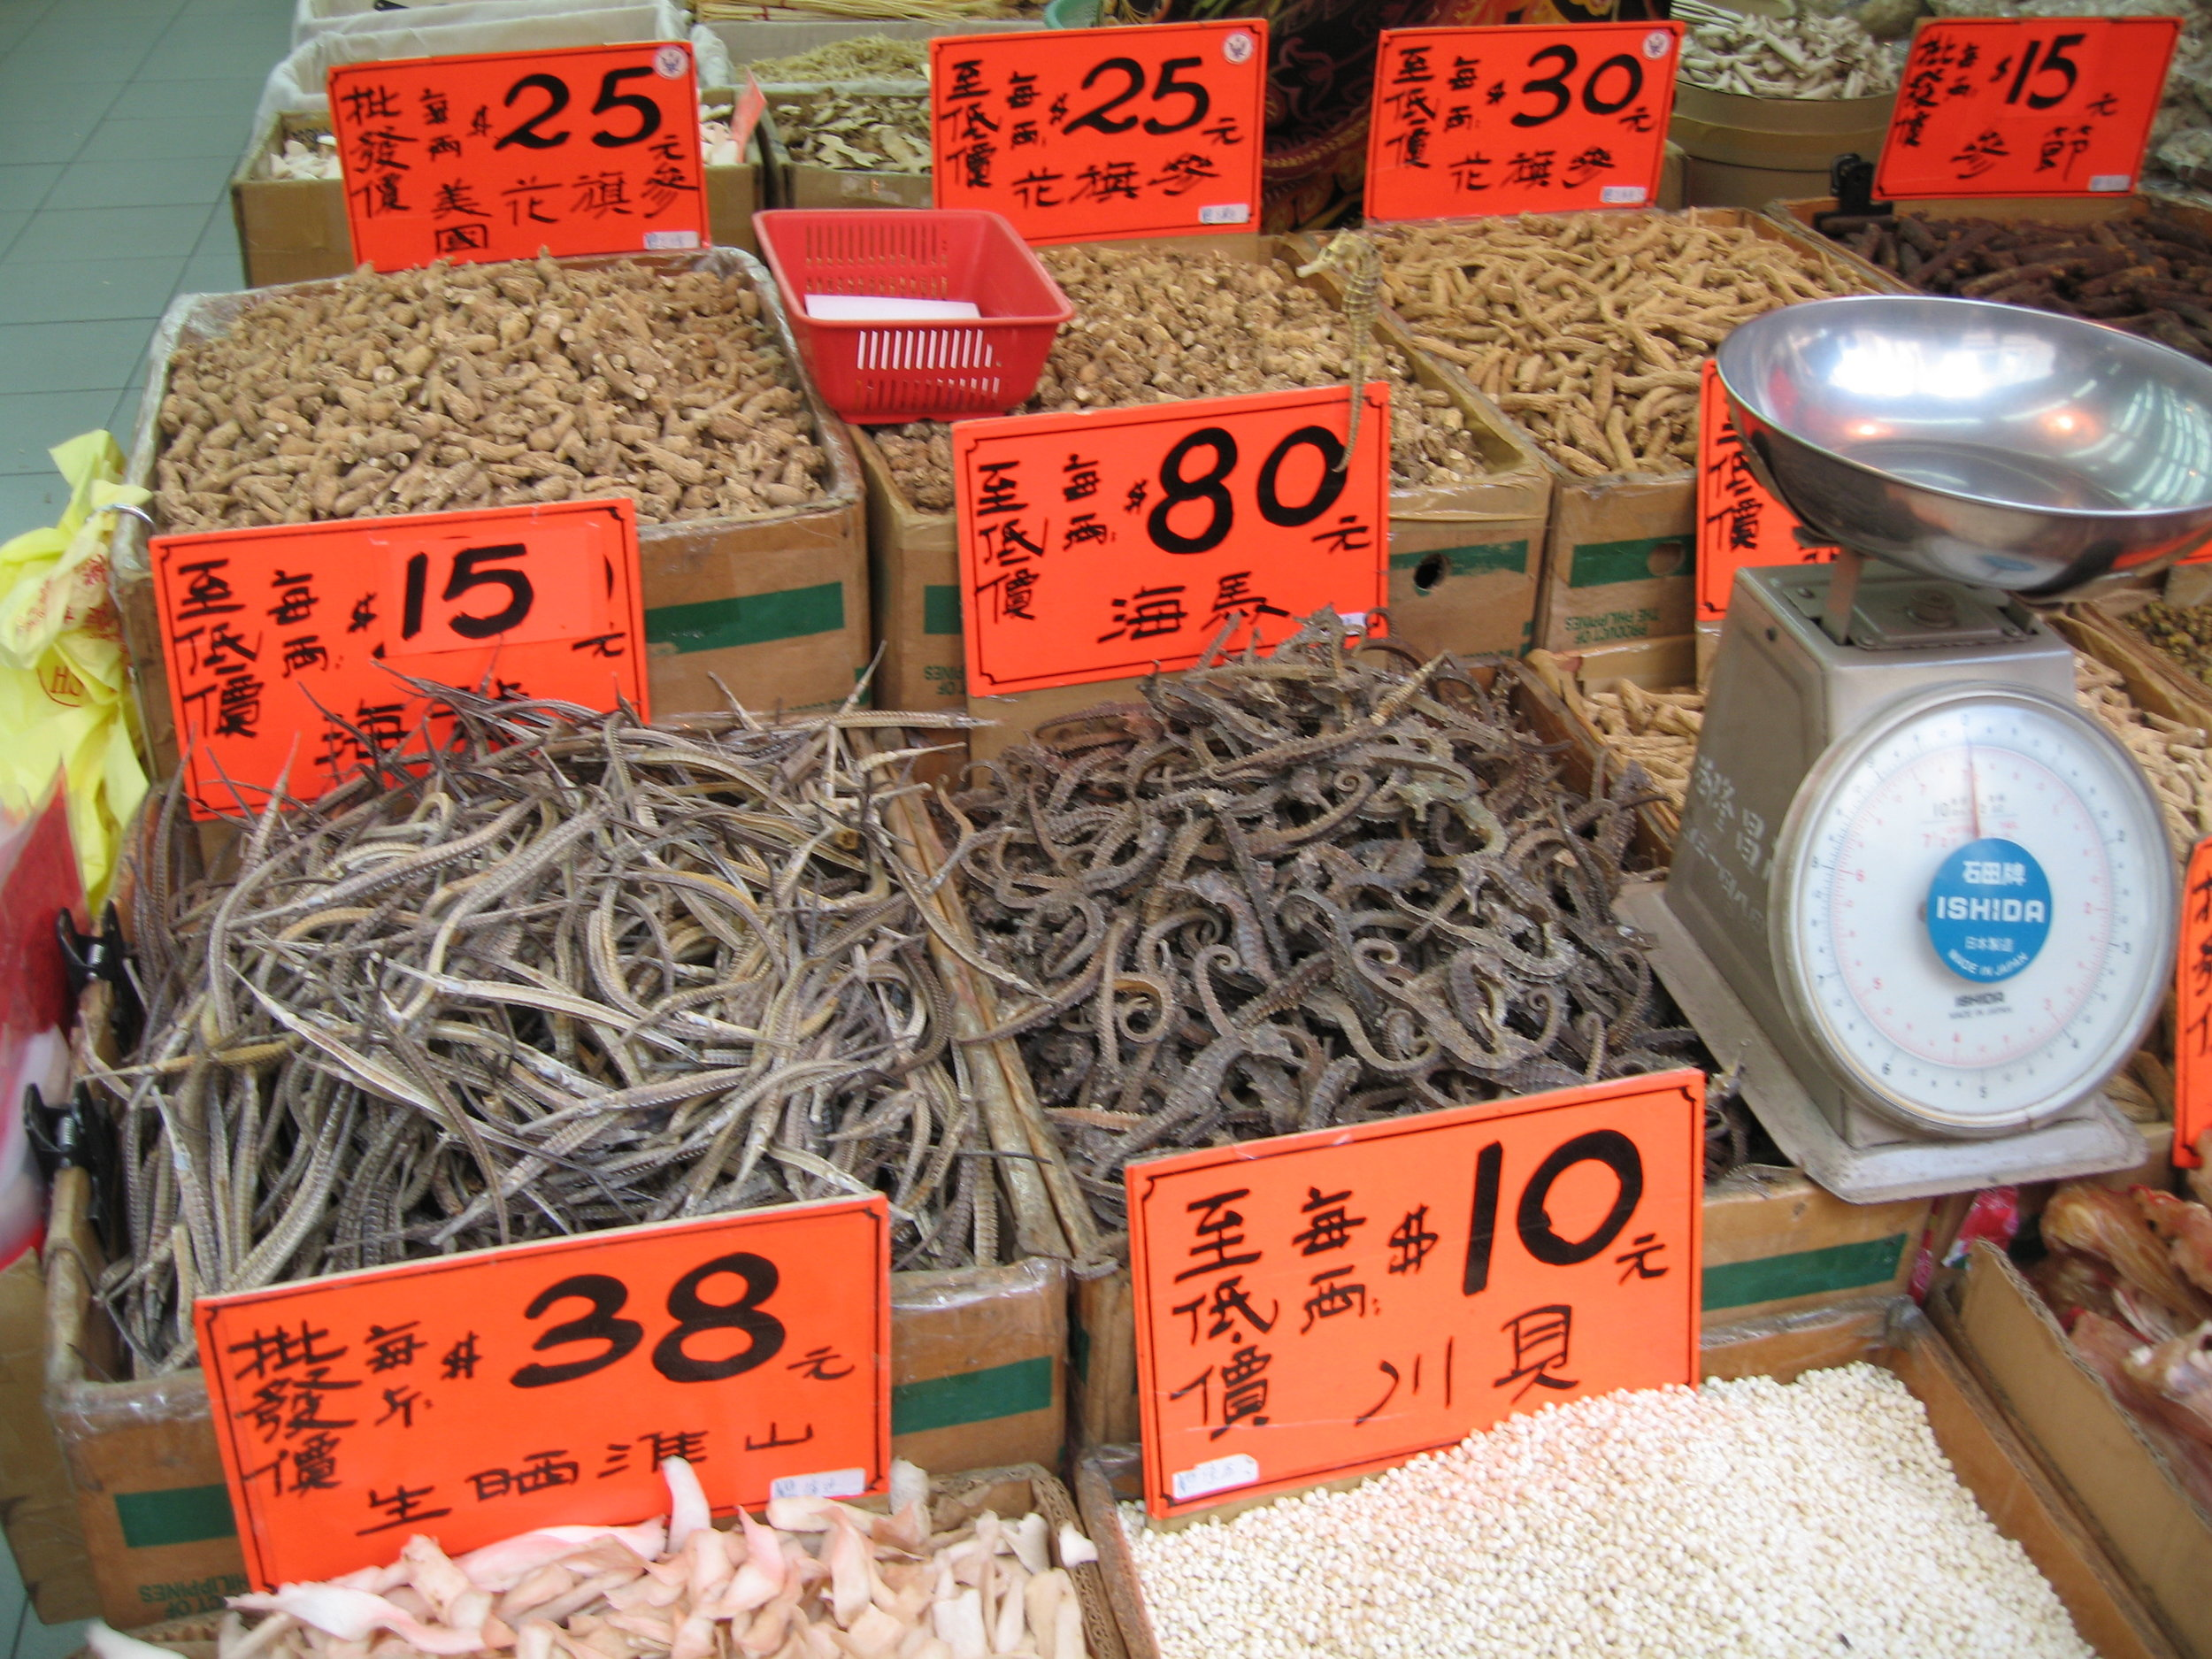 Dried pipefish and seahorses in Hong Kong market. Photo by A. Vincent/ Project Seahorse